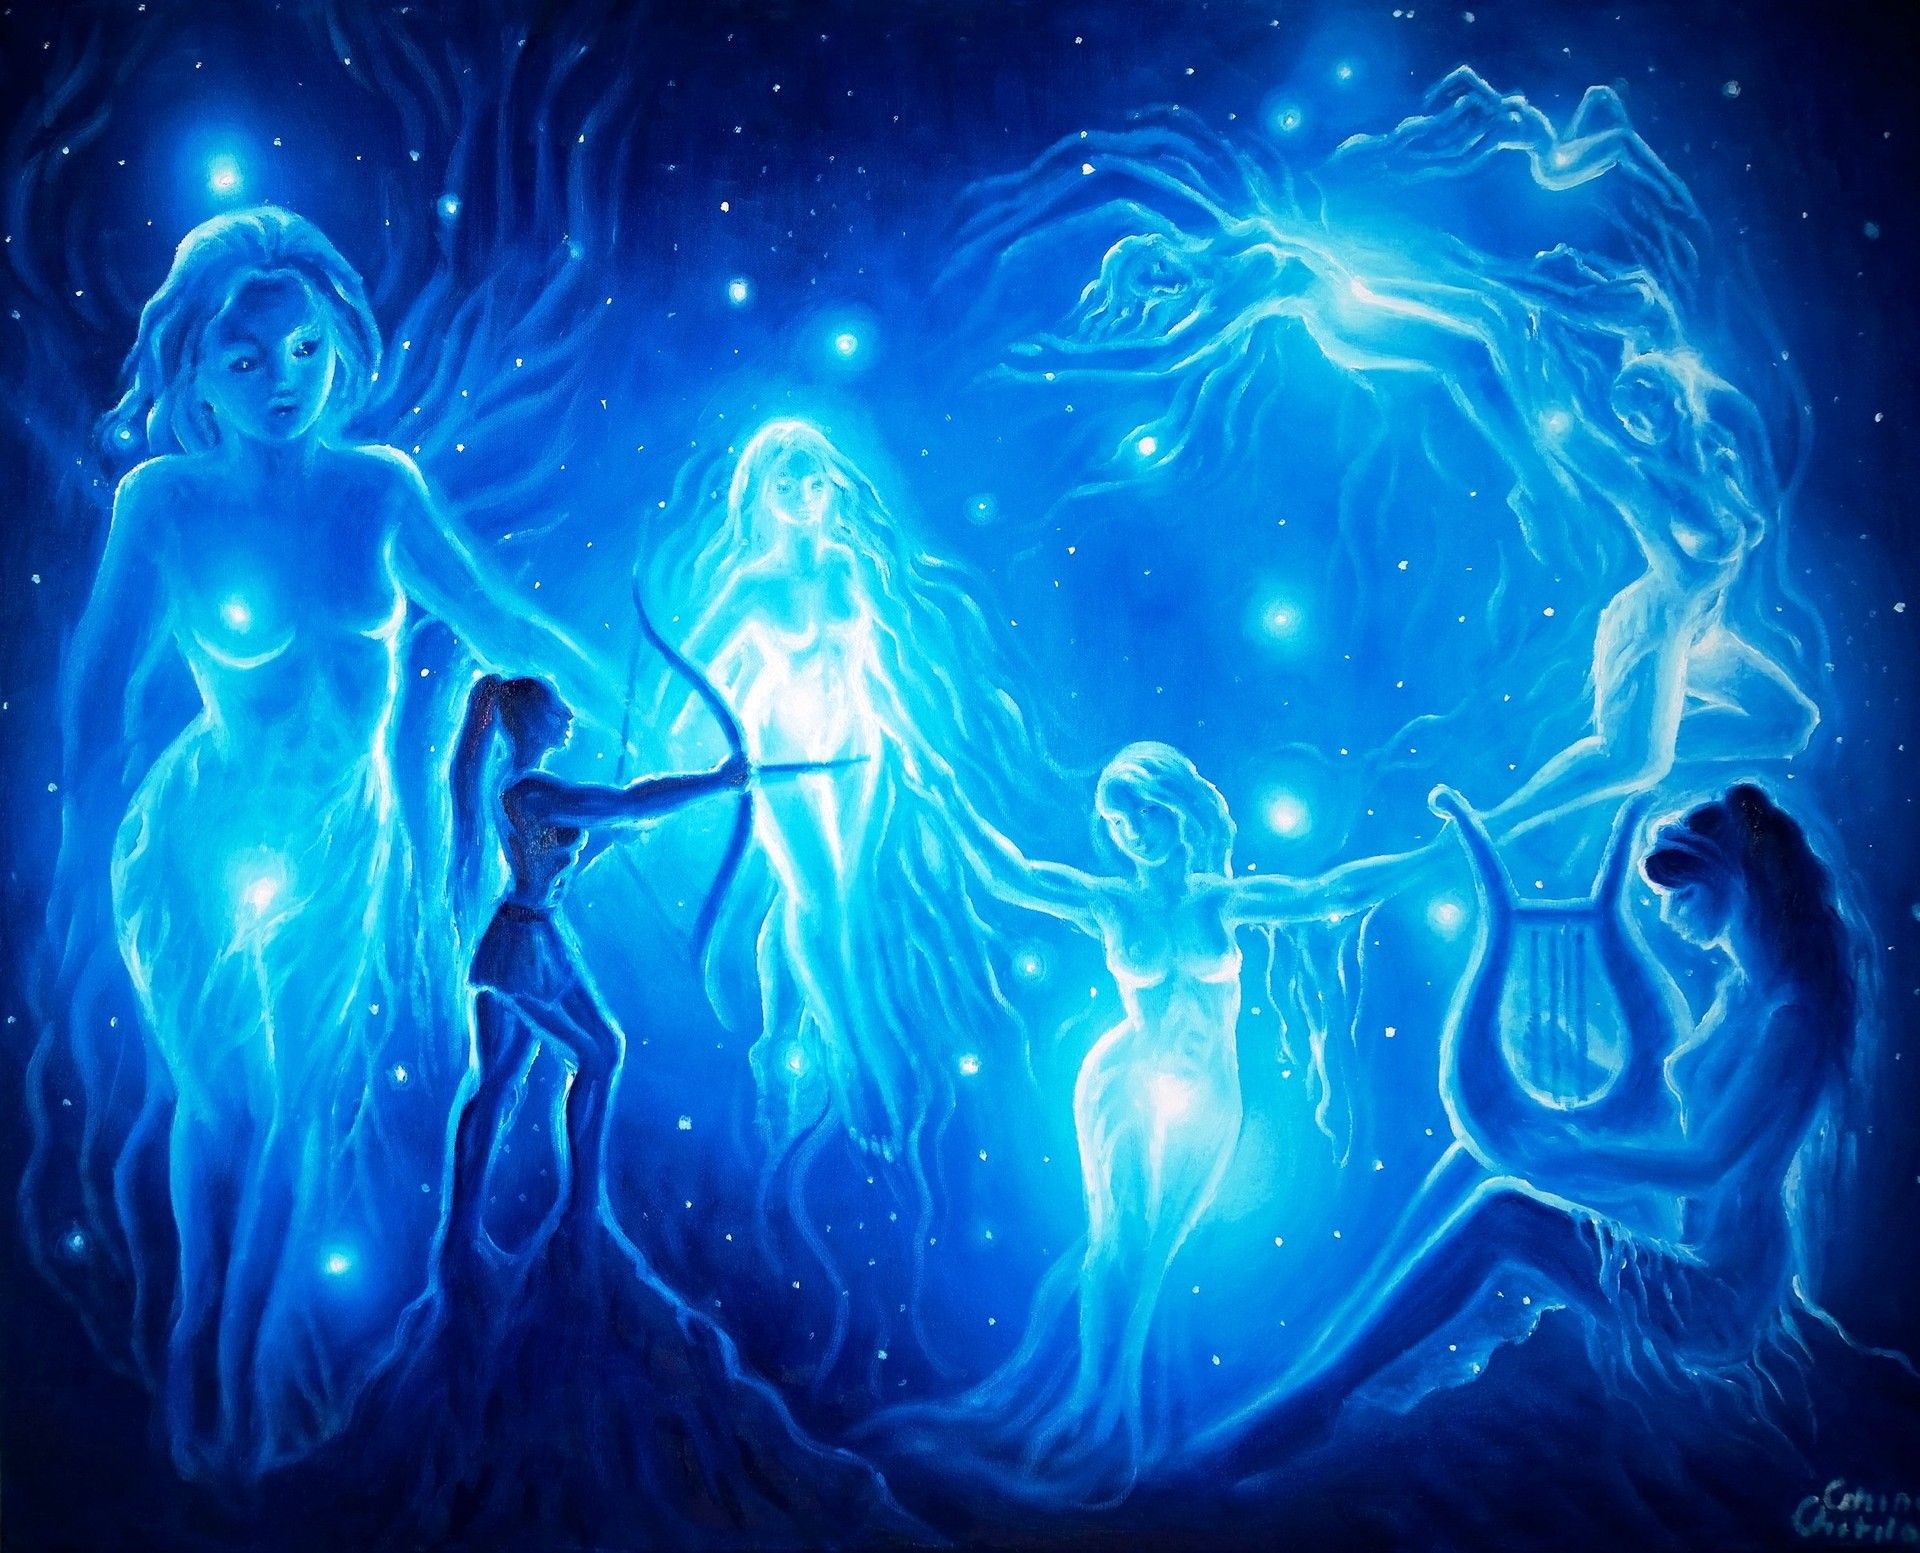 Pleiades: mythology of the Seven Sisters